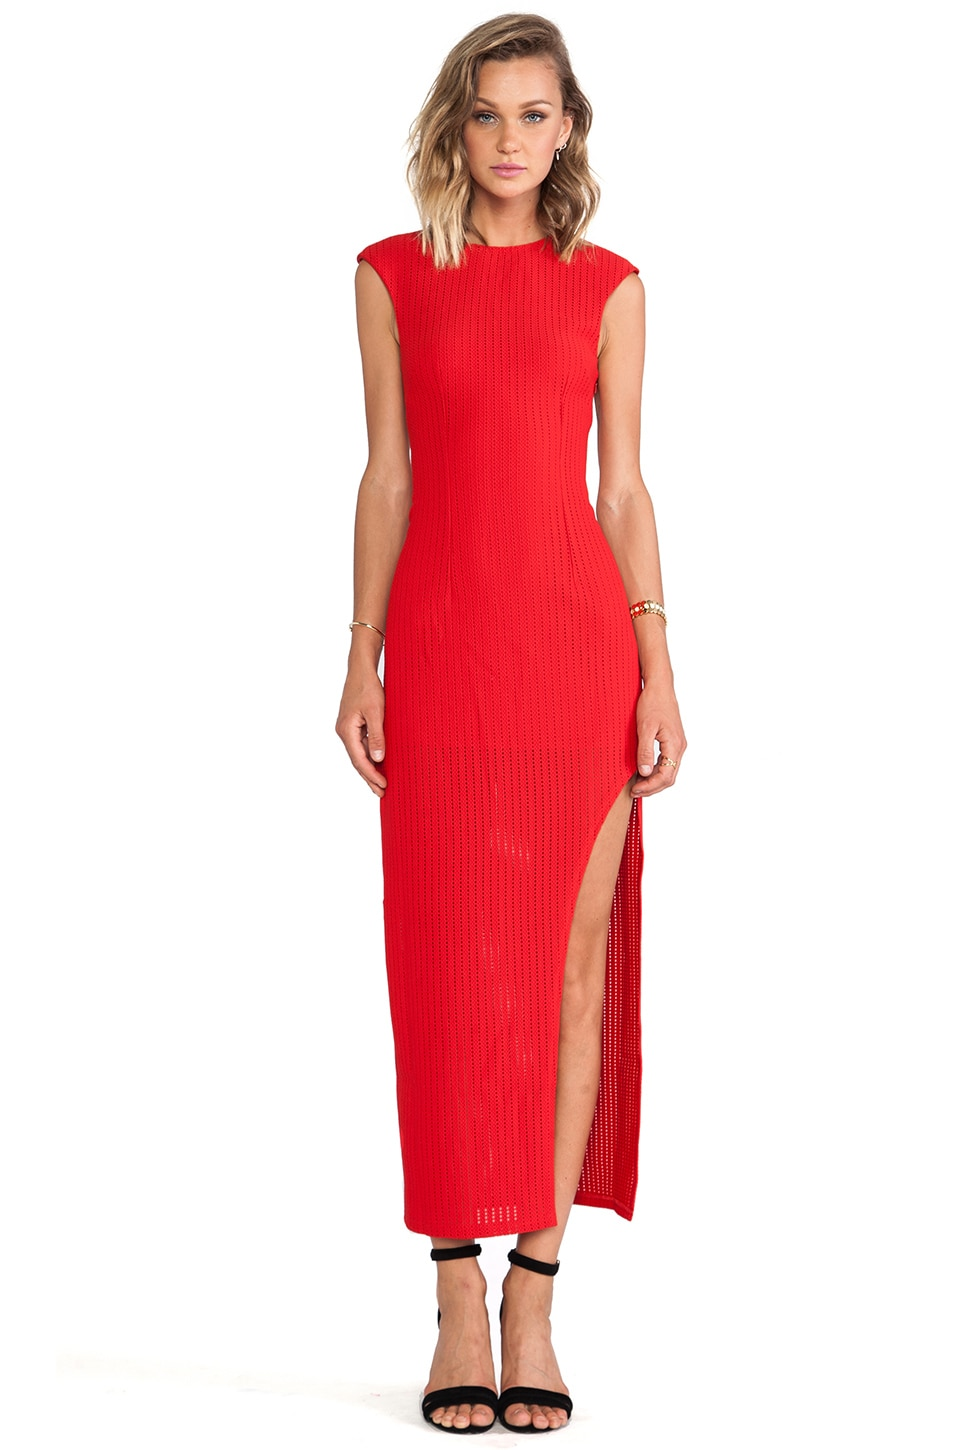 Lumier Web of Life Maxi Dress in Red